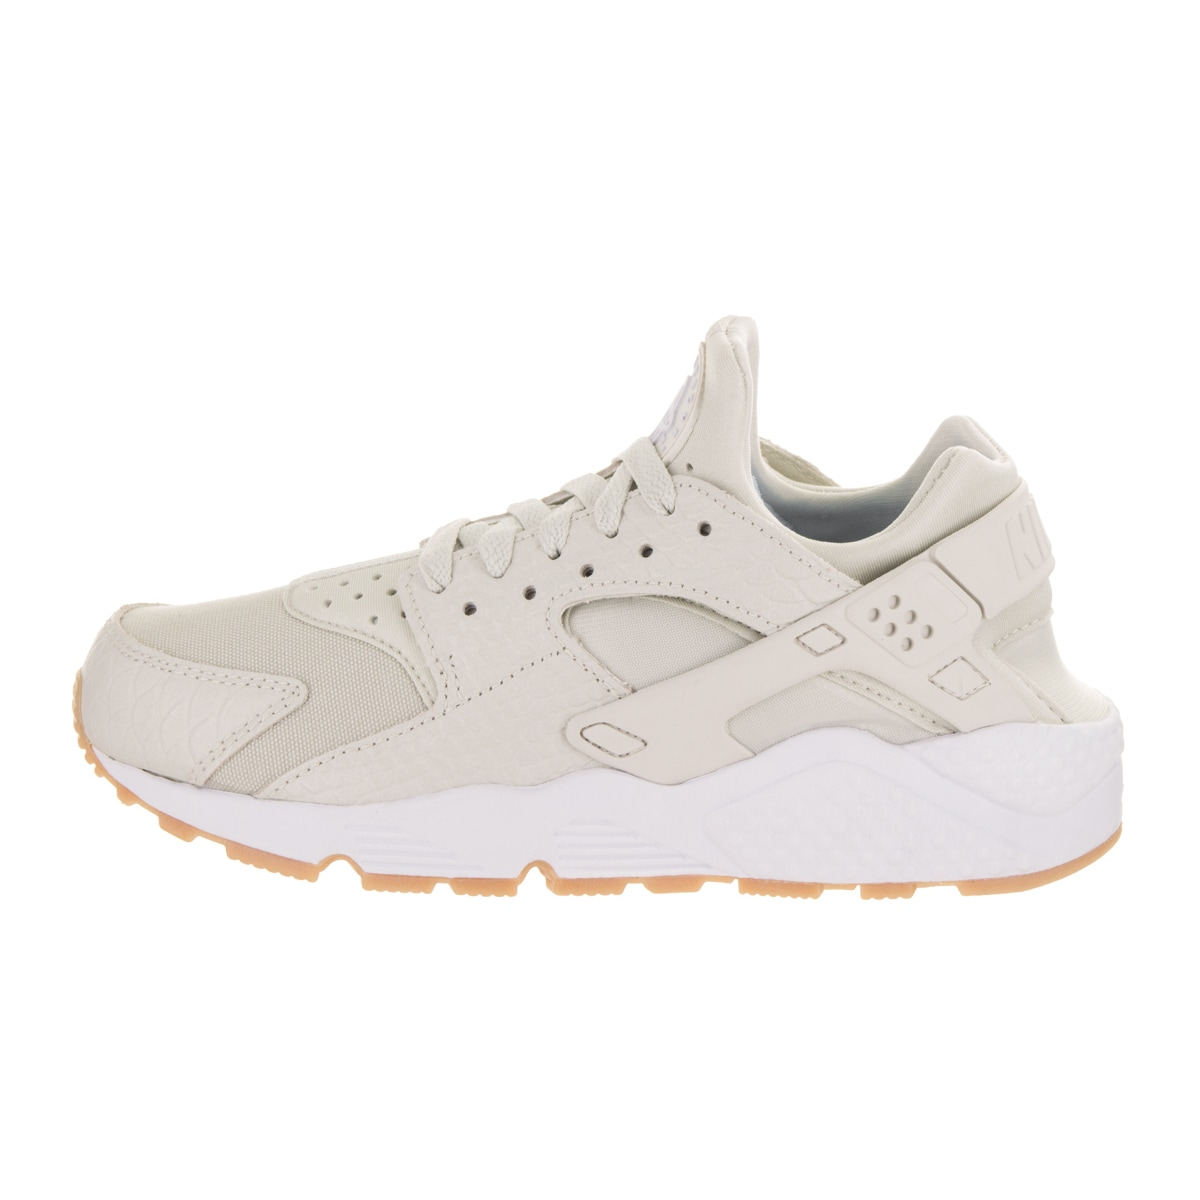 fa181ab265986 Shop Nike Women s Huarache Run SE Light Bone Canvas Running Shoe - Free  Shipping Today - Overstock - 16431859